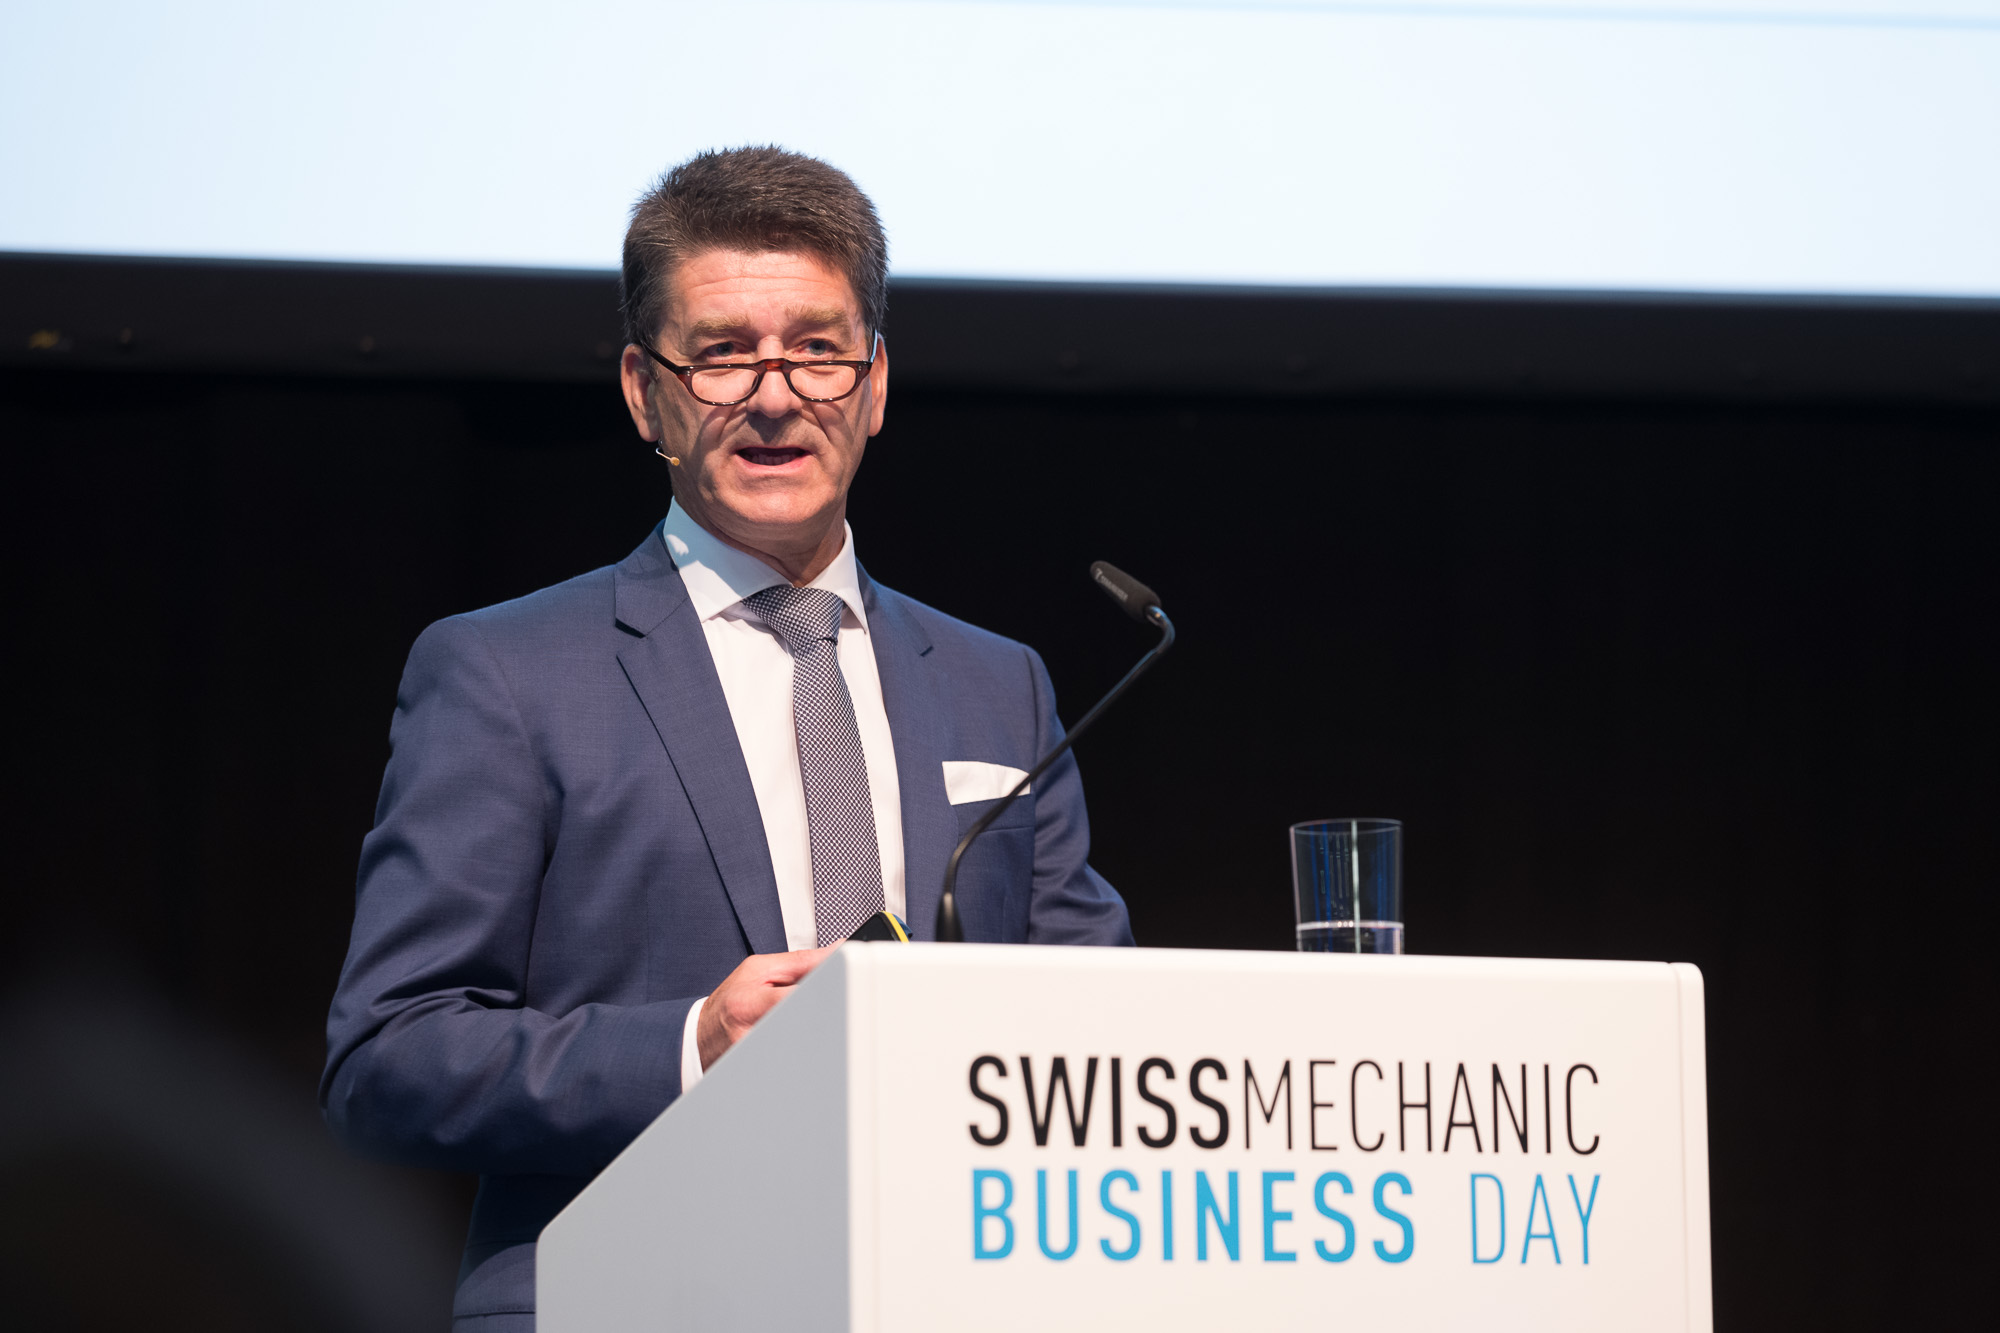 20170914_swissmechanic_businessday_P1040885.jpg